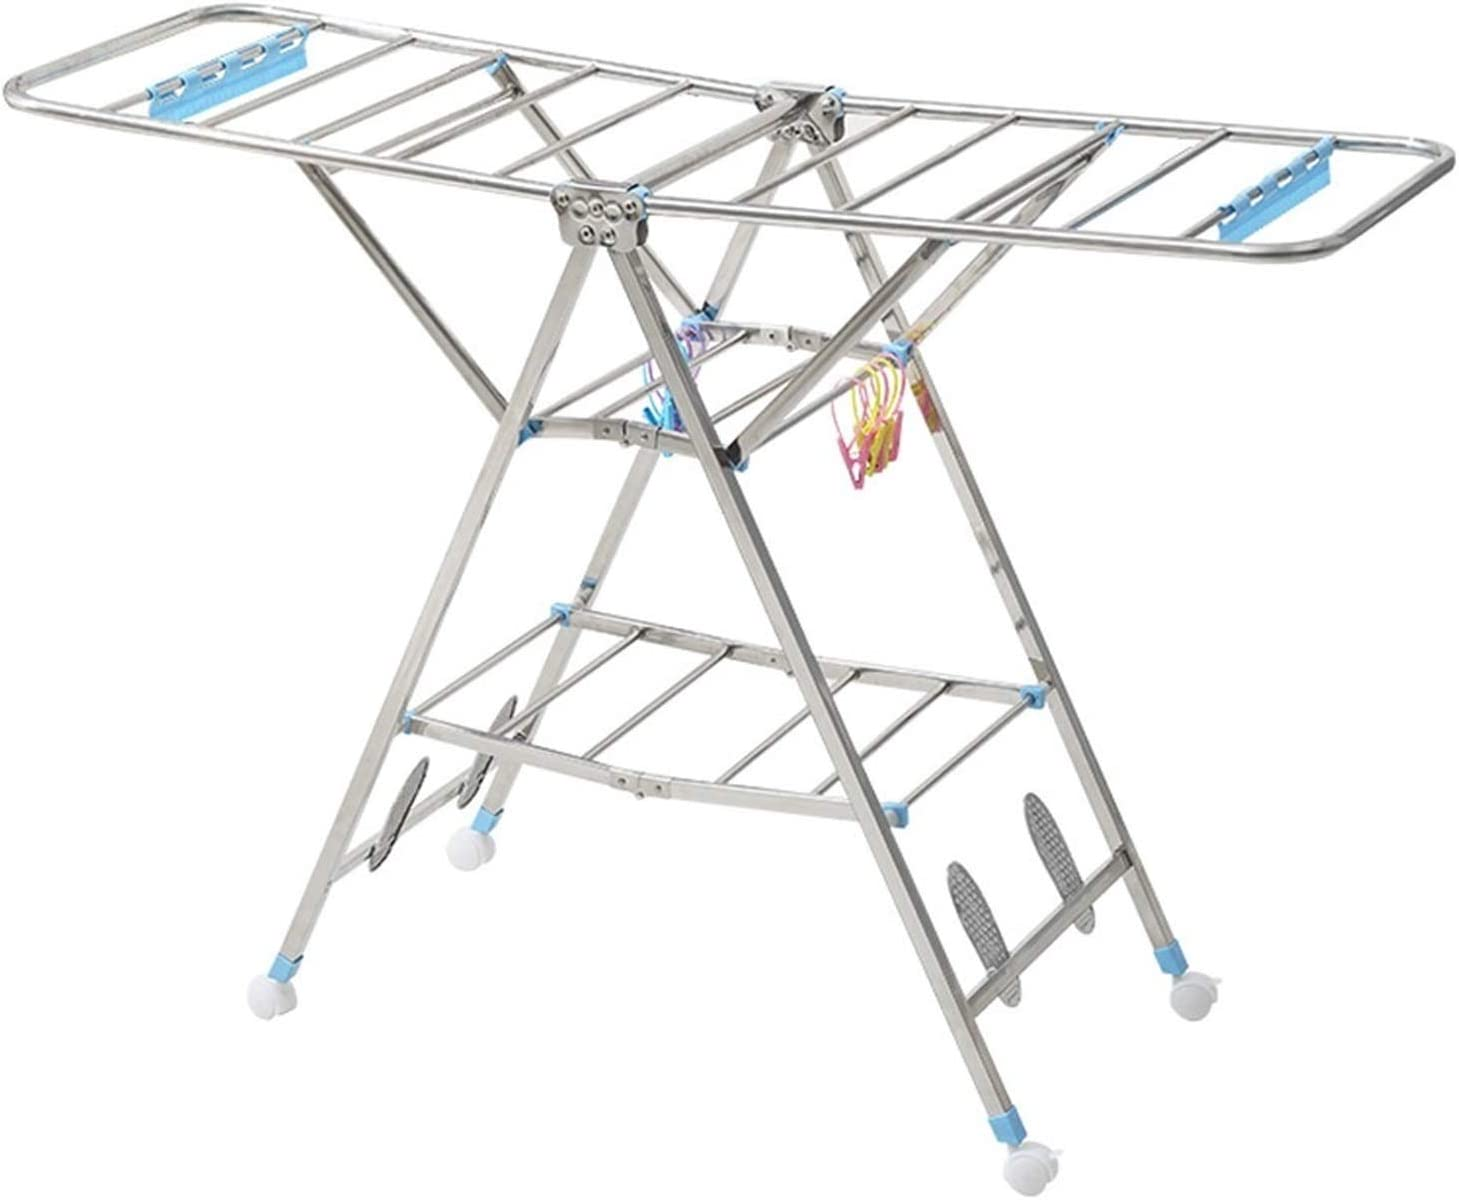 XIAOQIU Challenge the lowest price of Japan Clothes Drying Rack Gorgeous for Tier Sta Laundry 3 Airer